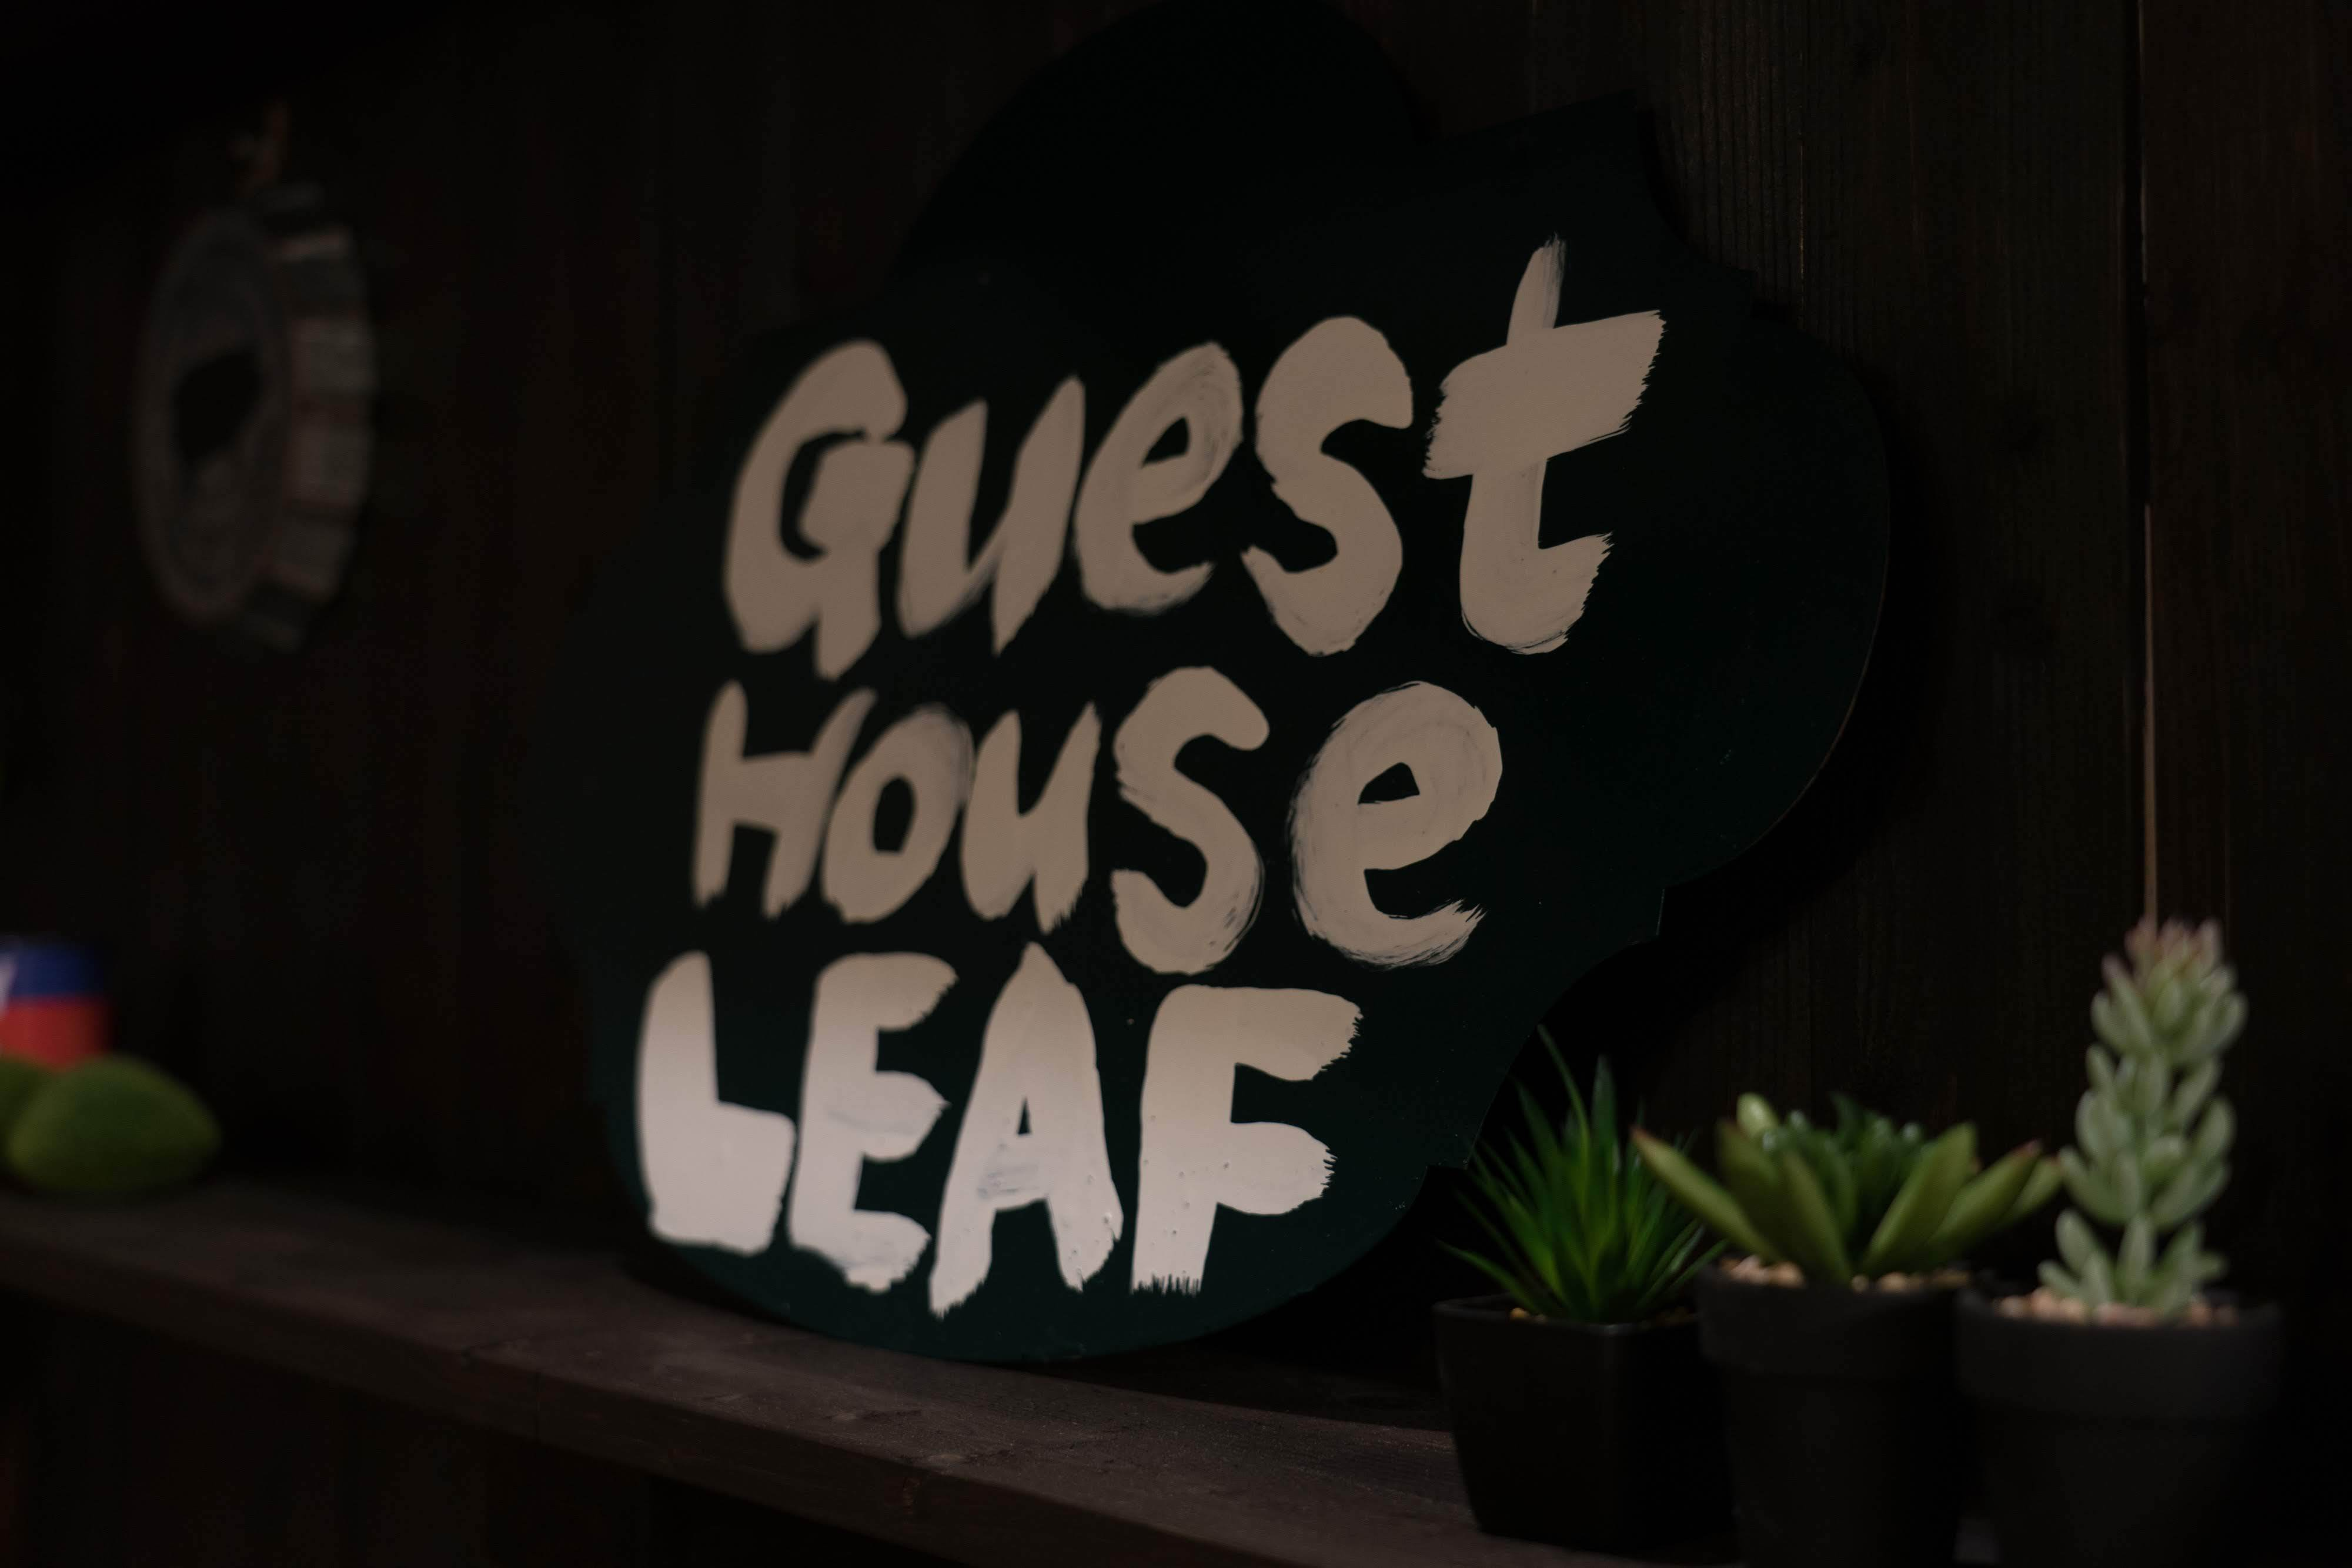 Guesthouse Leaf